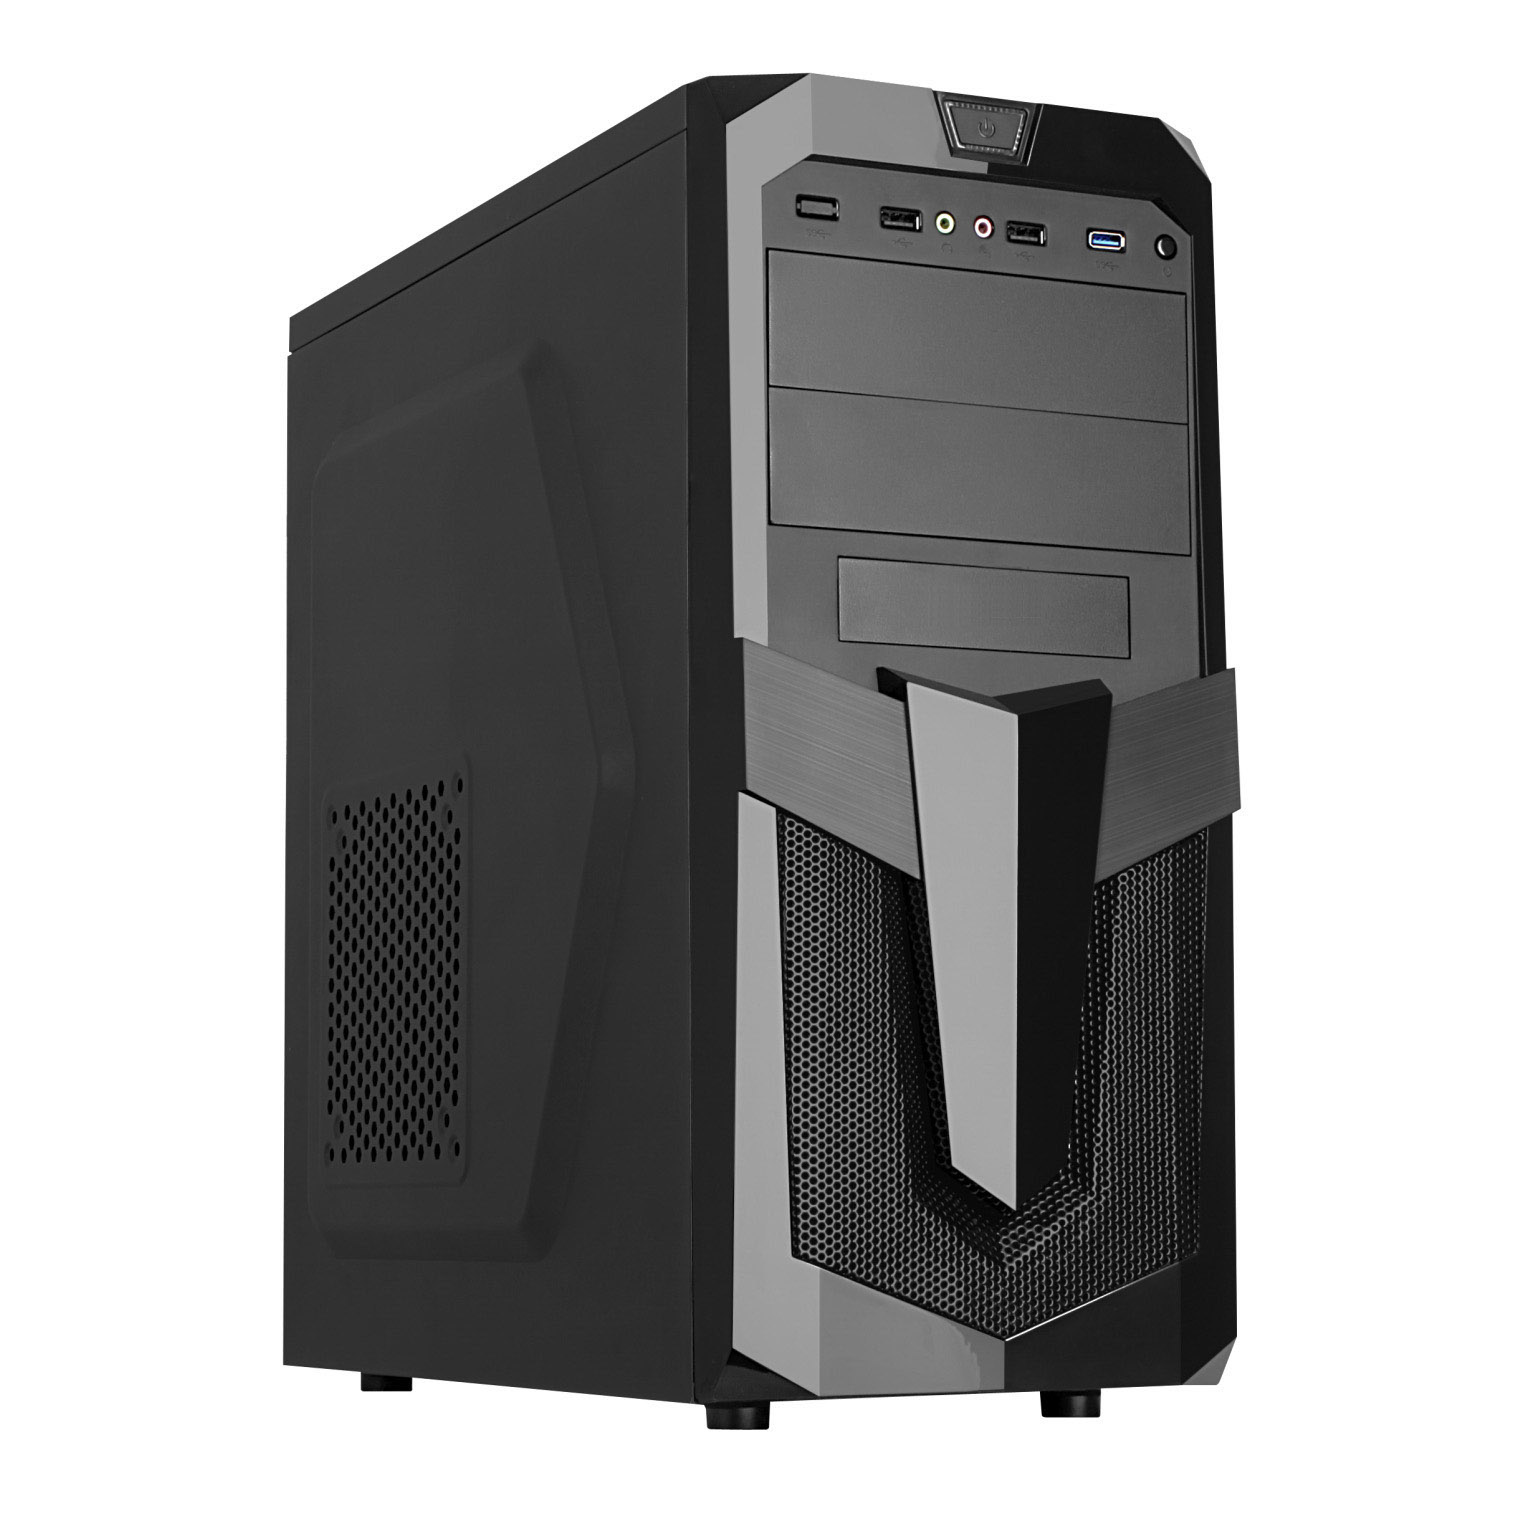 Main image Midi Tower ATX Case AKY25BK